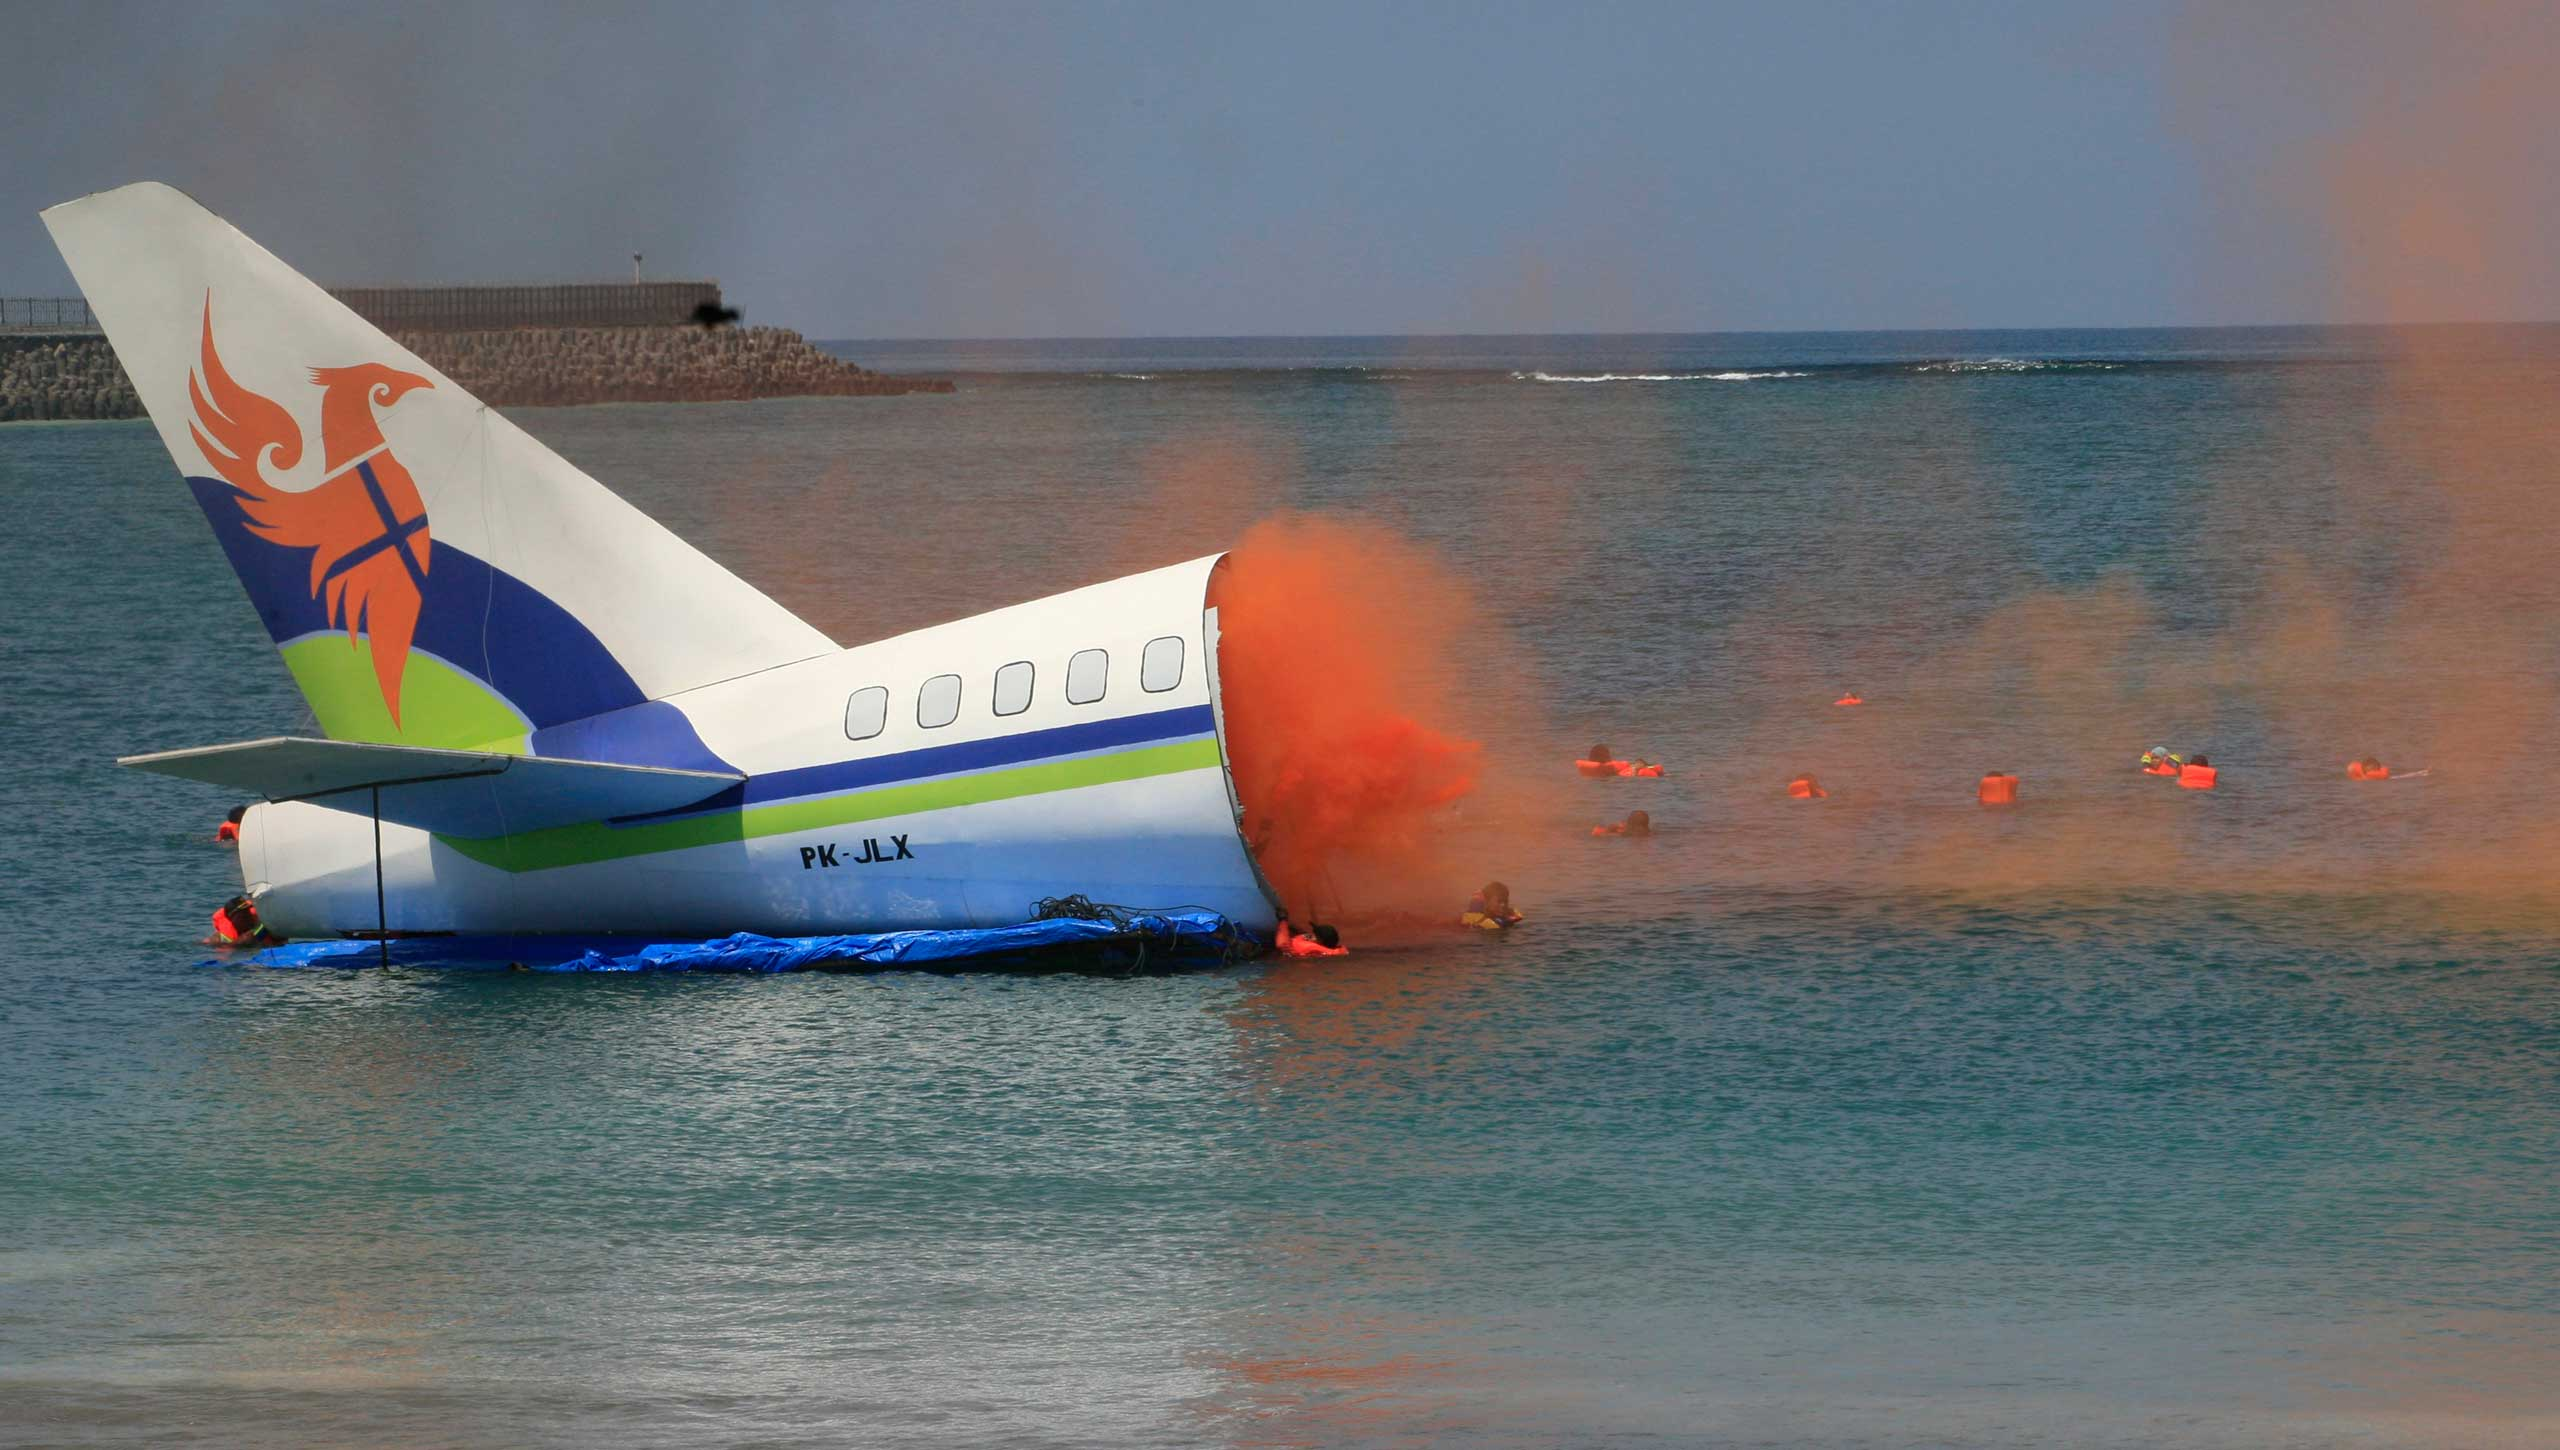 Nov. 18, 2014. Passengers flee from a mock plane fuselage, during a rescue exercise at Bali's International Ngurah Rai Airport in Indonesia.